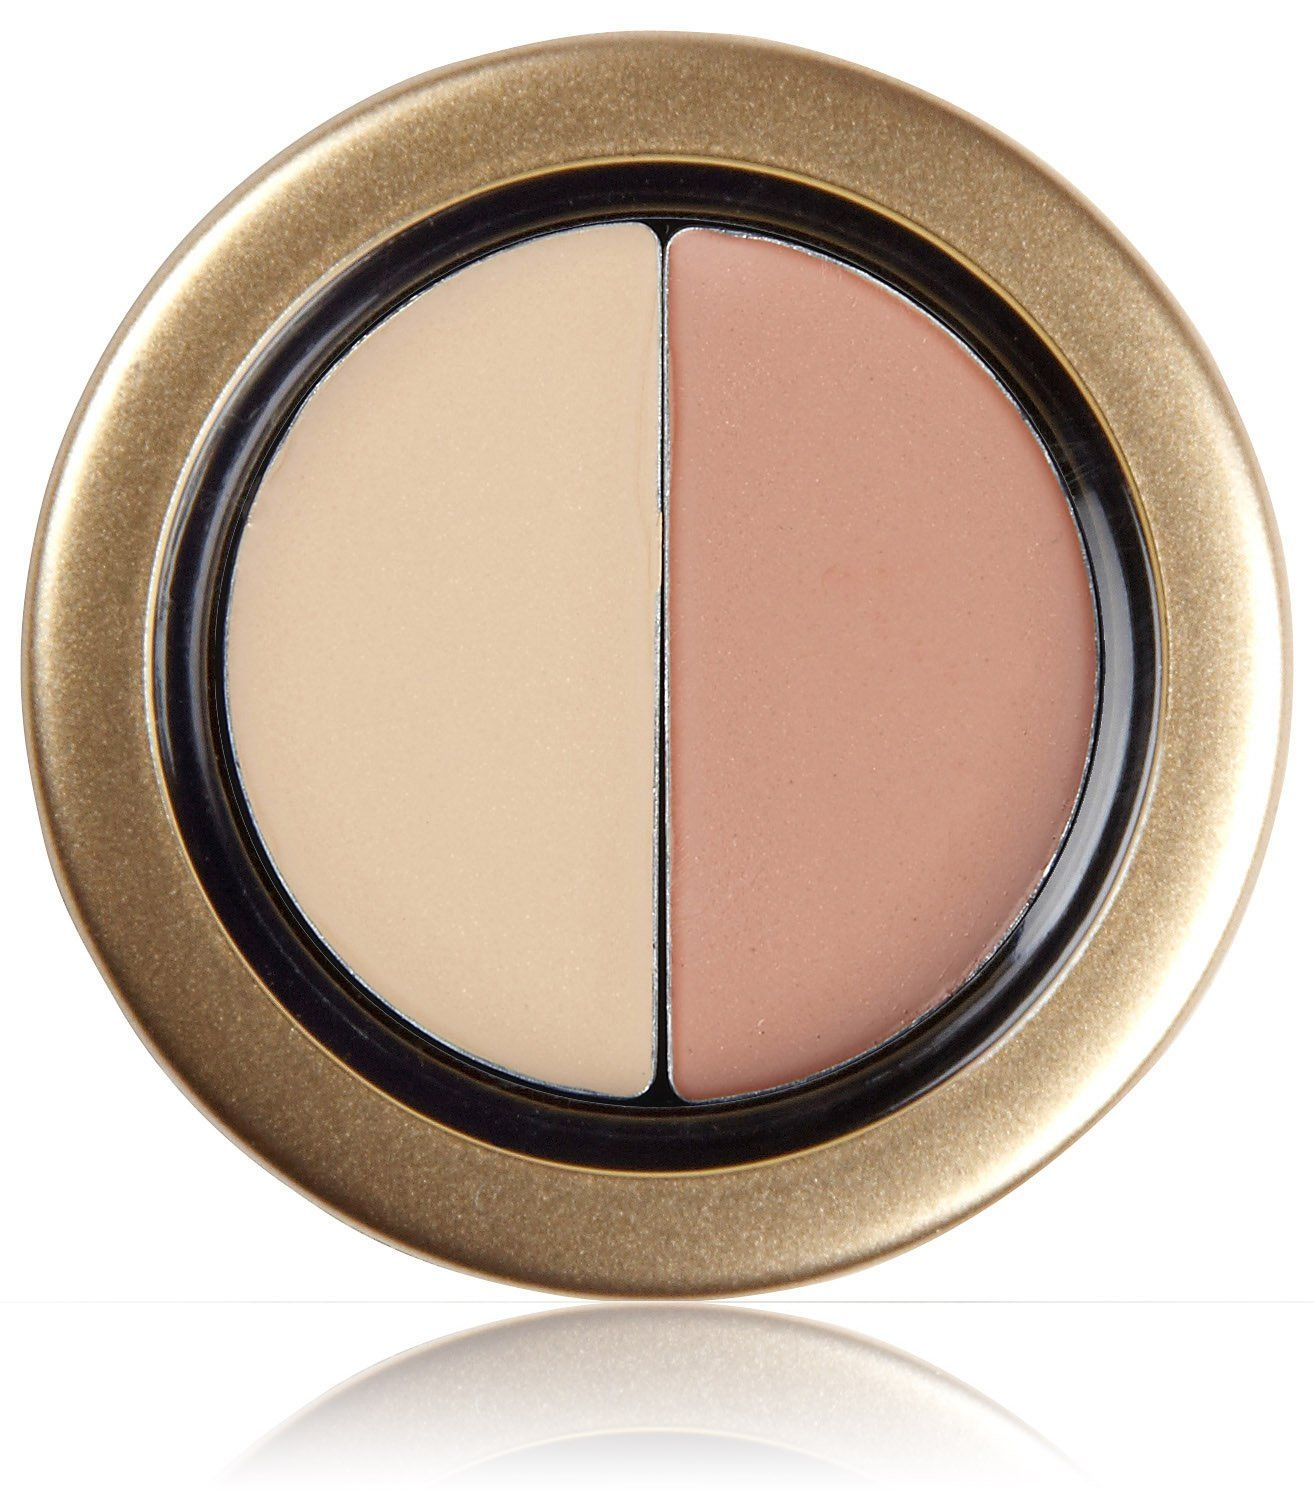 Corrective Colors Kit by Jane Iredale #18